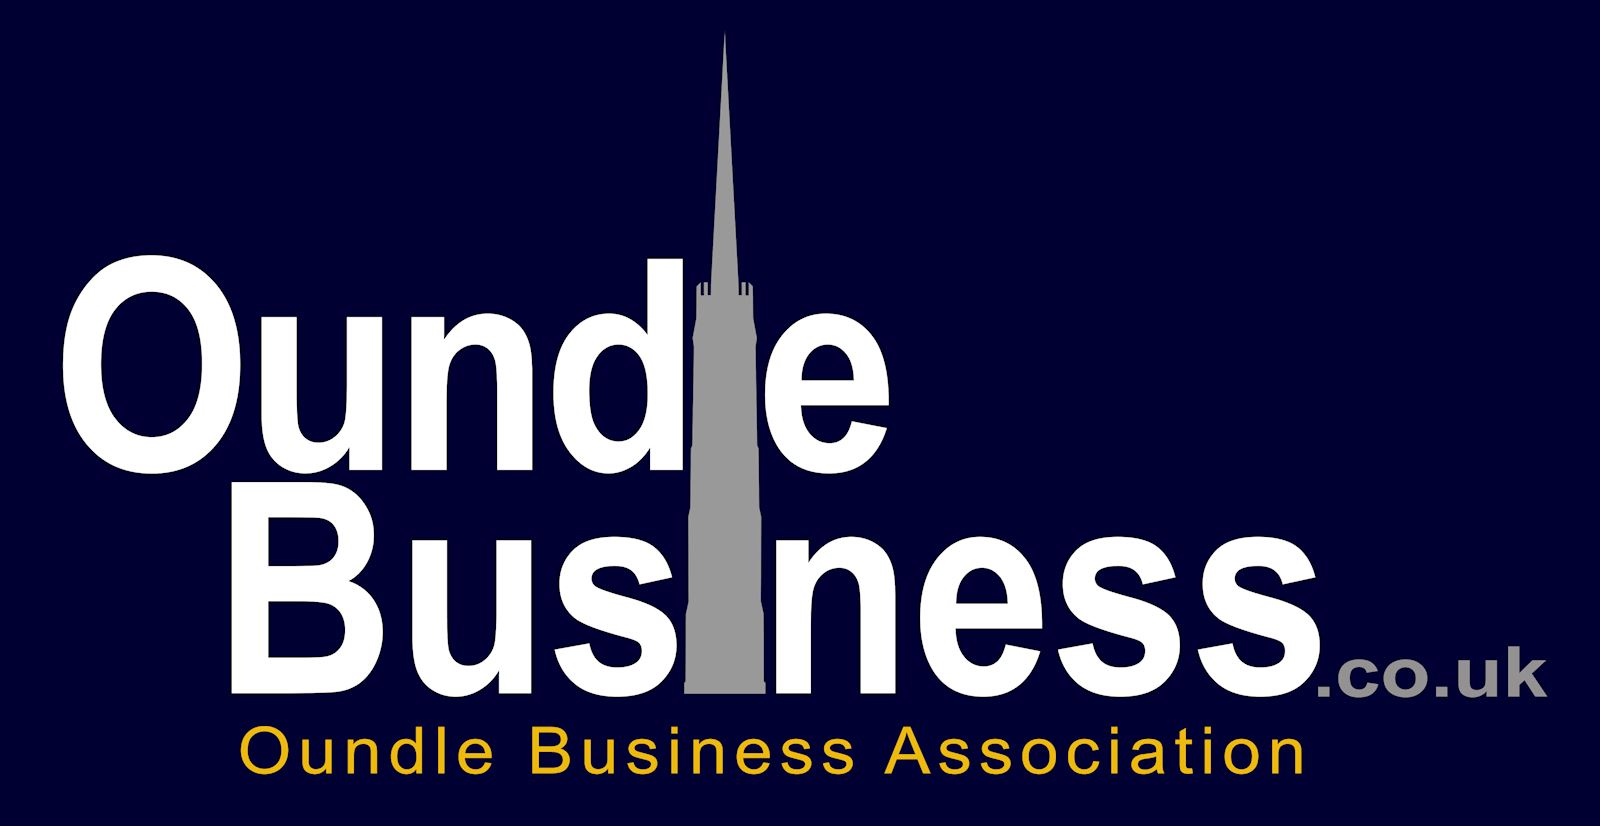 Oundle Business Association